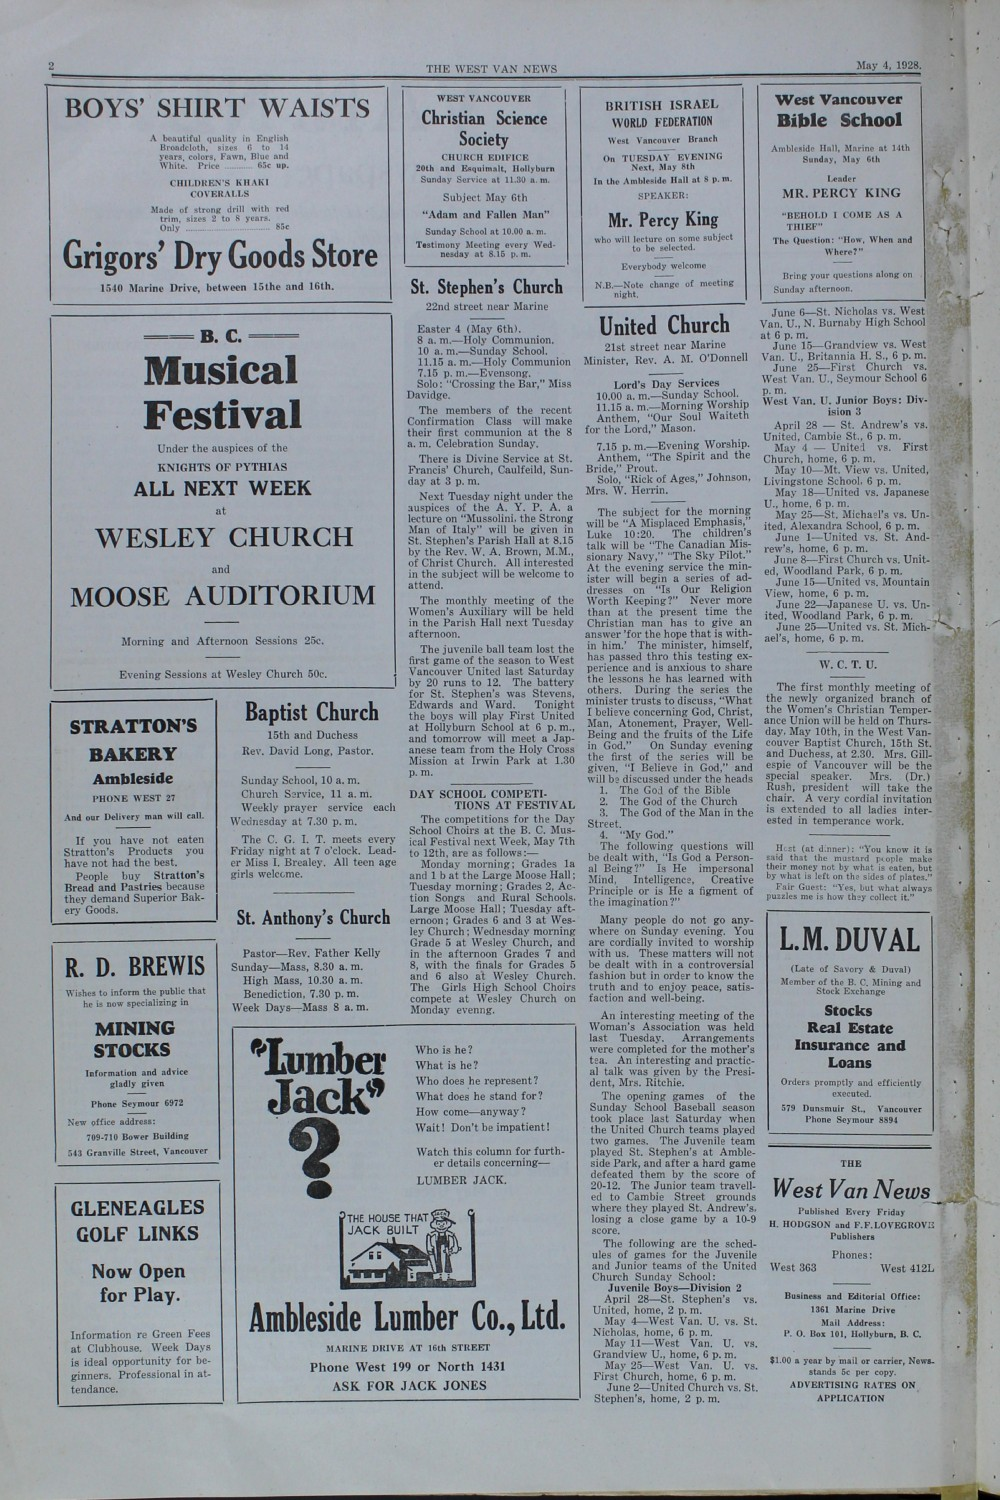 West Van. News (West Vancouver), 4 May 1928